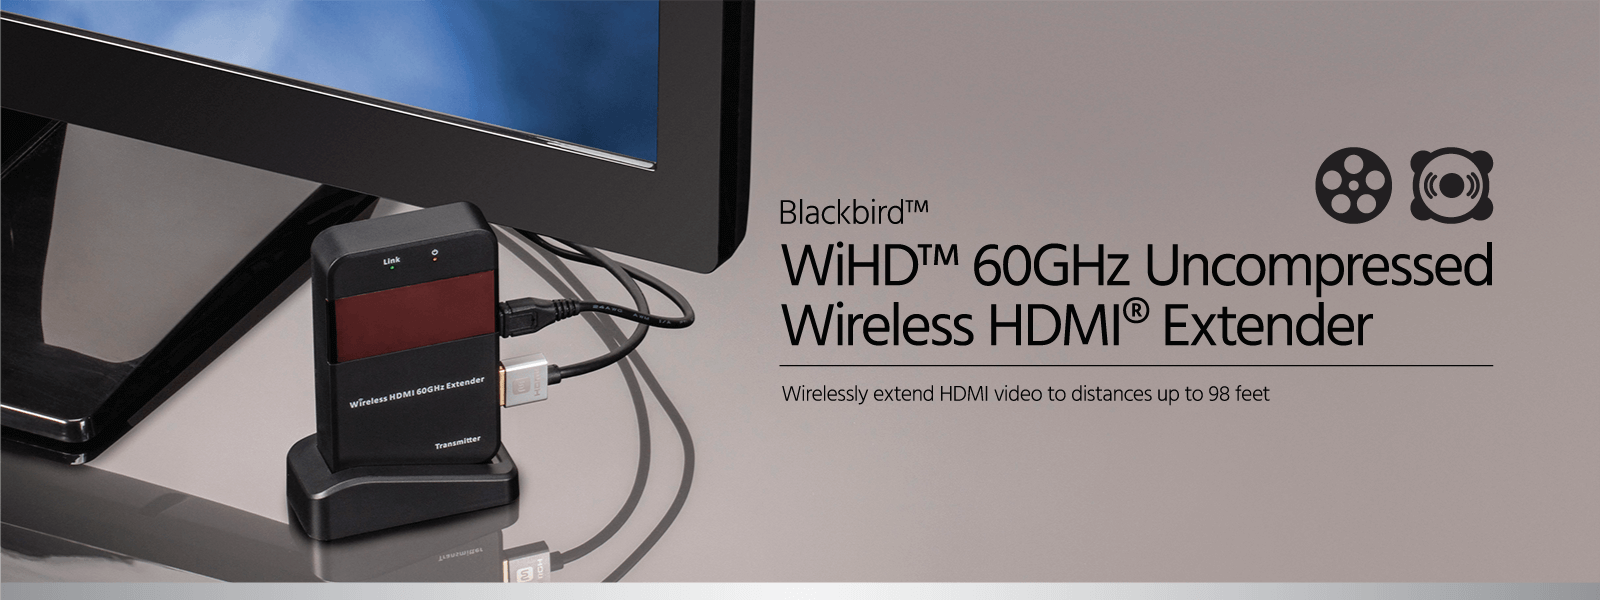 Blackbird WiHD Wireless HDMI Extender